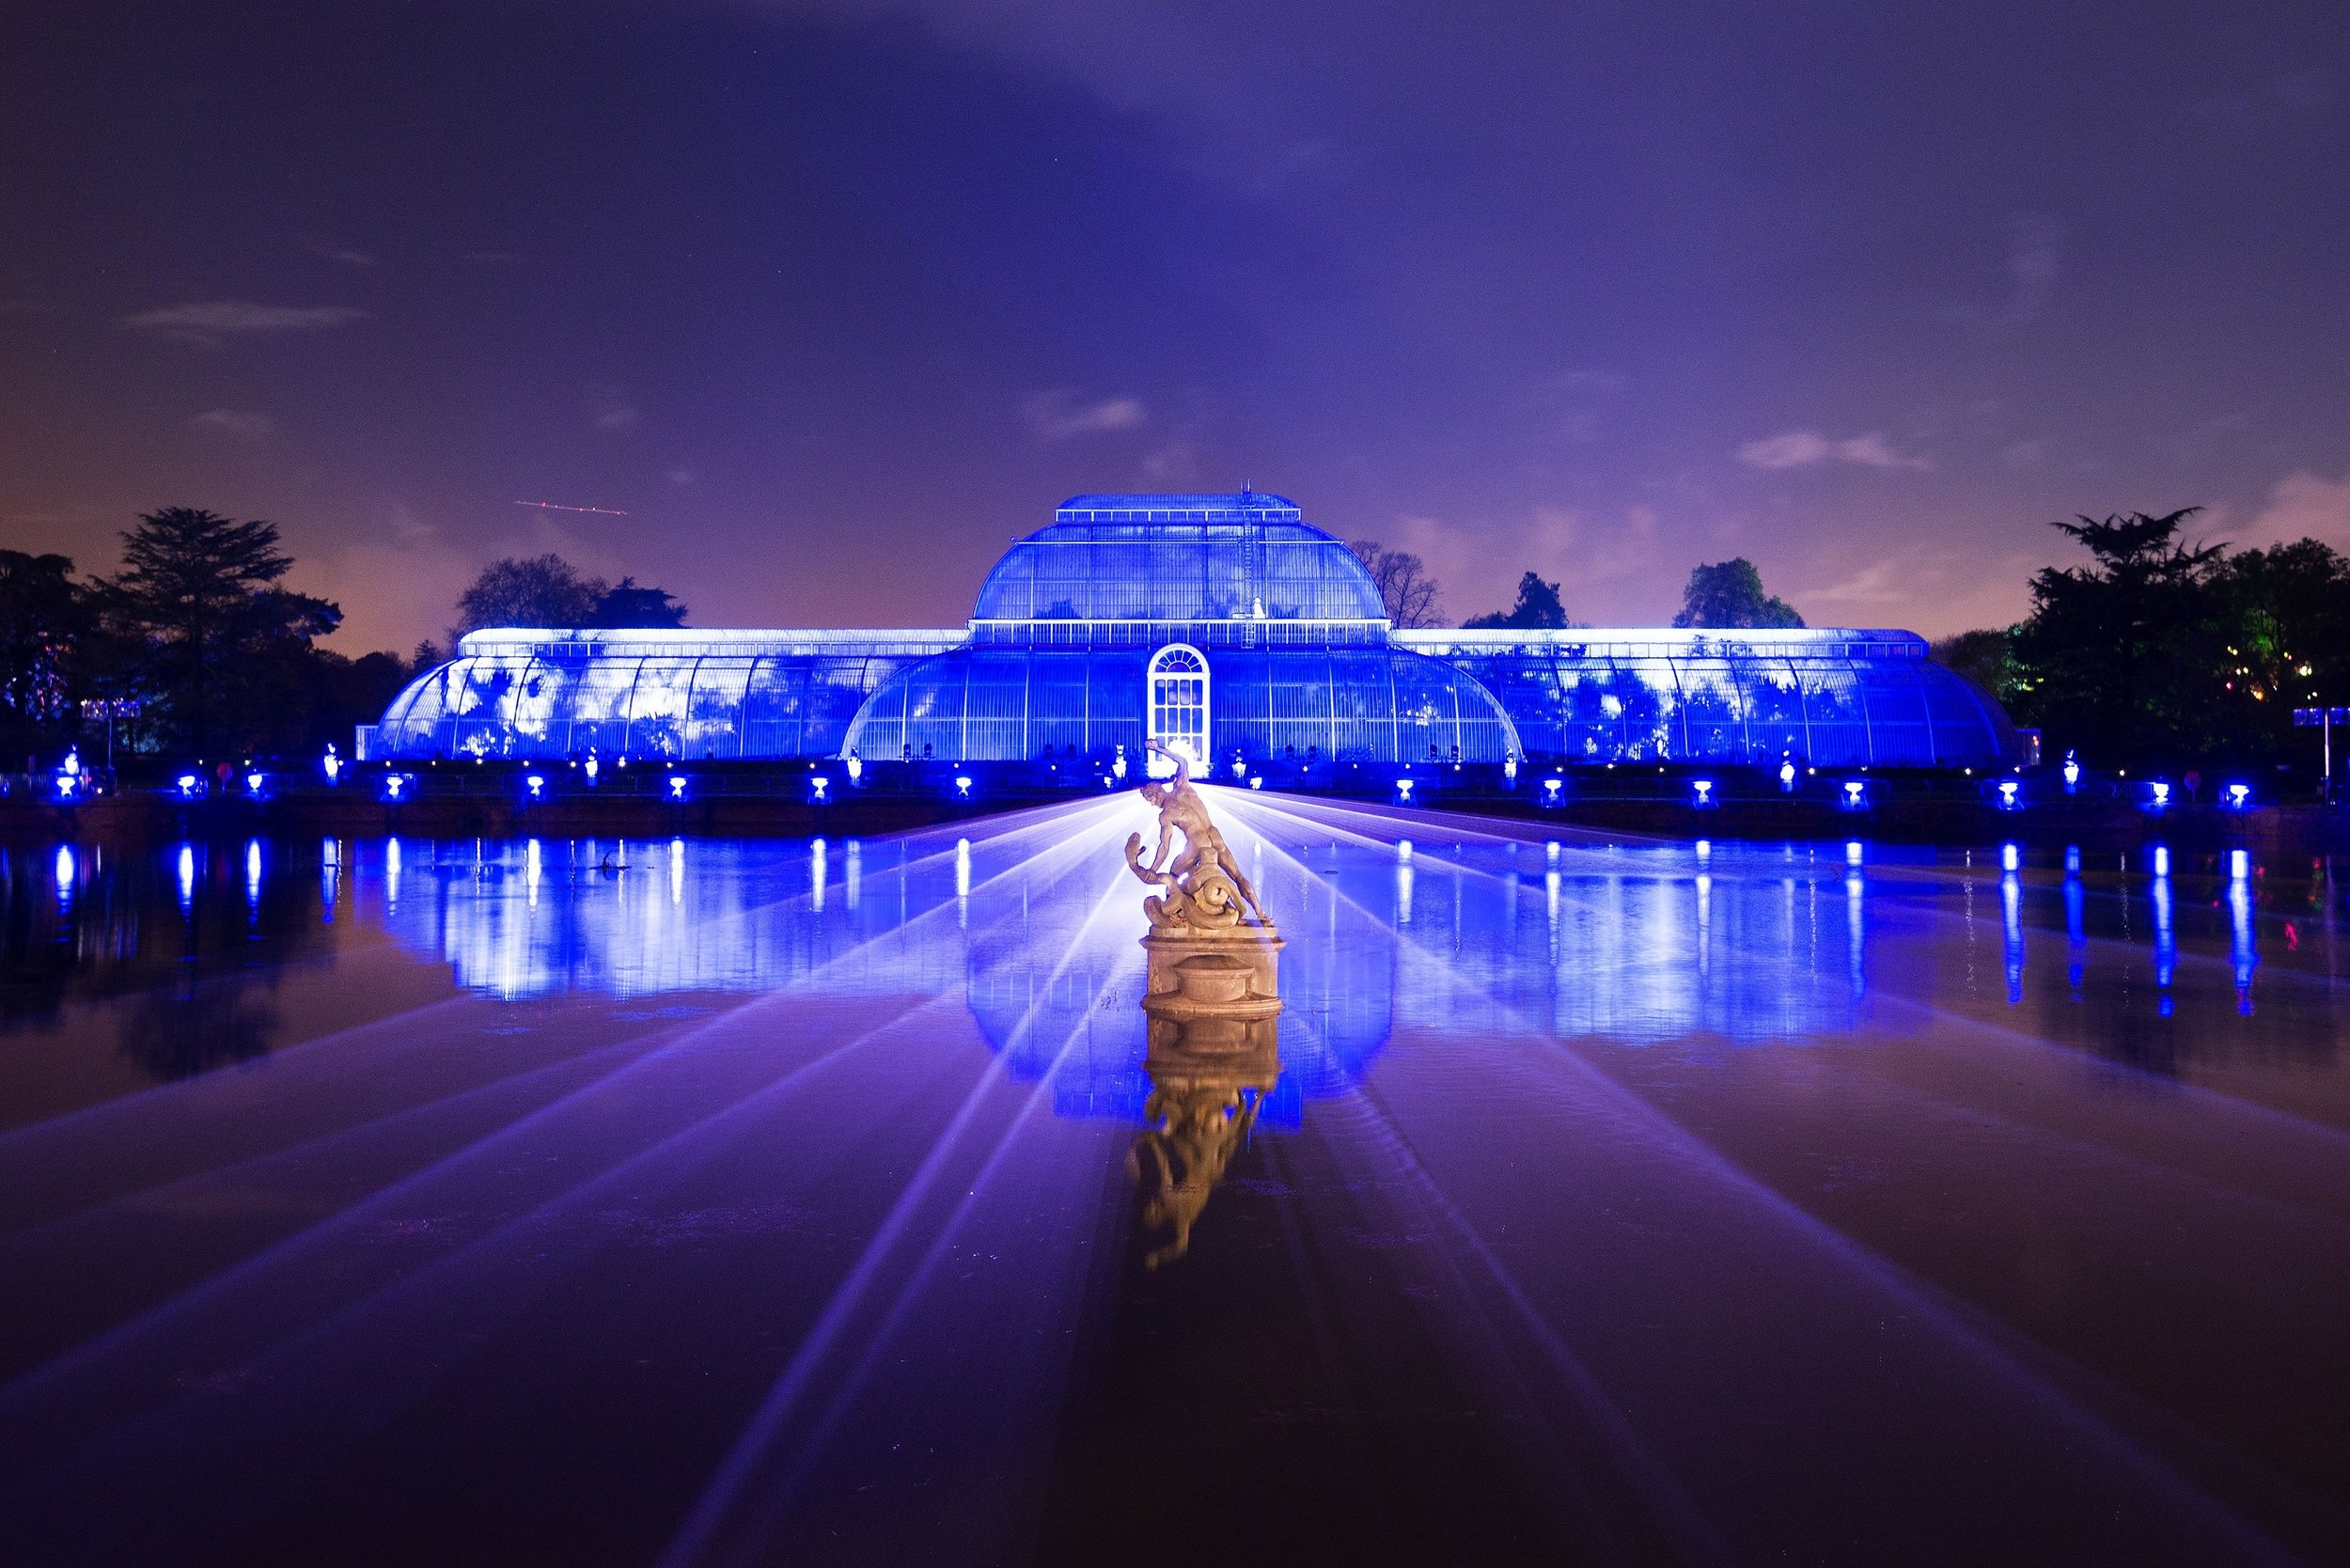 Palm House Illuminations, Jeff Eden, Royal Botanical Gardens Kew